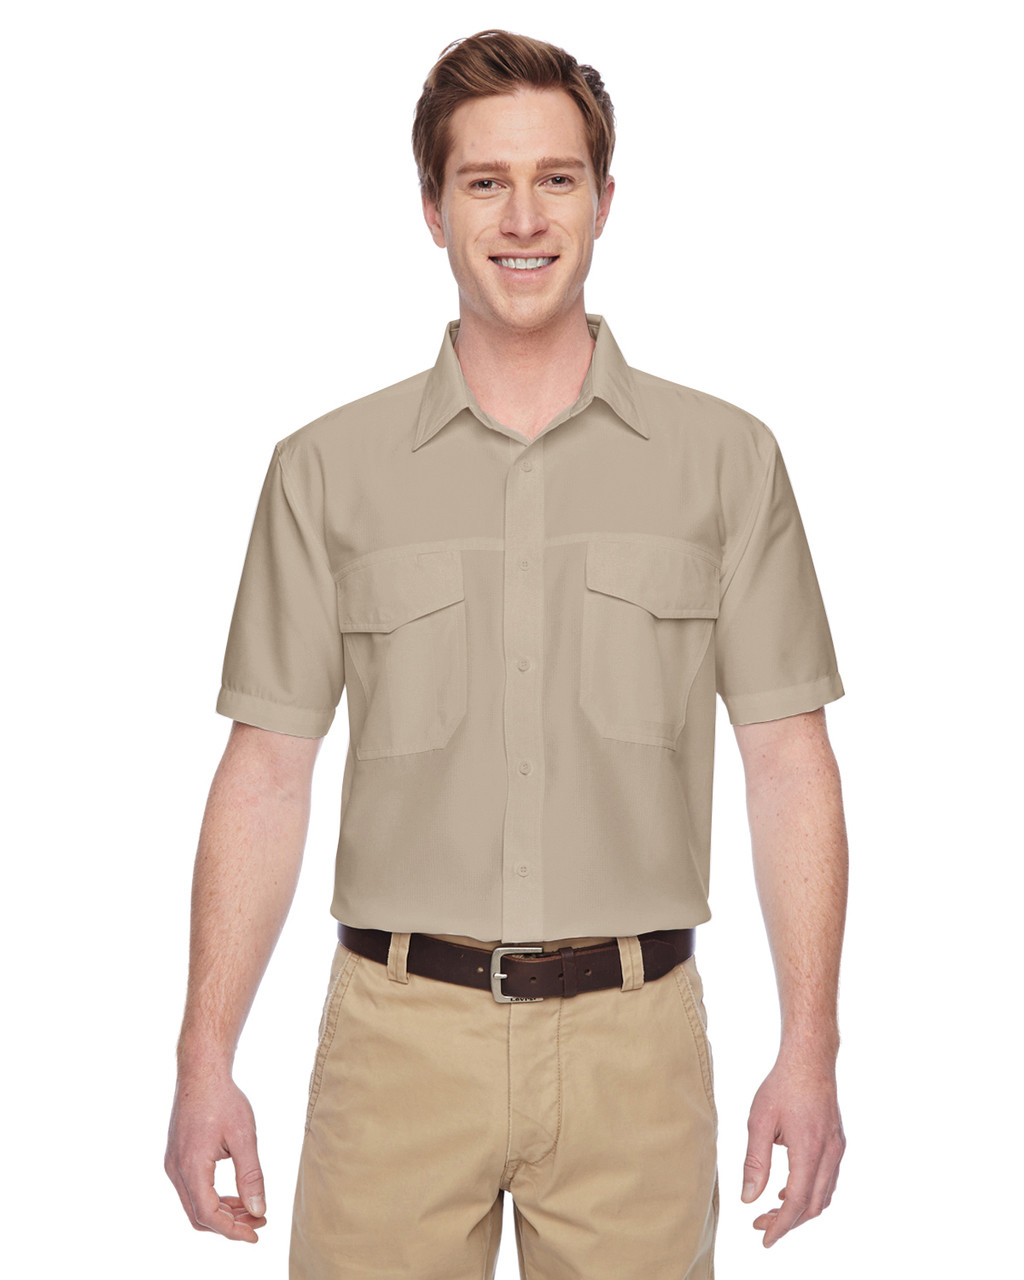 Khaki - M580 Harriton Men's Key West Short-Sleeve Performance Staff Shirt